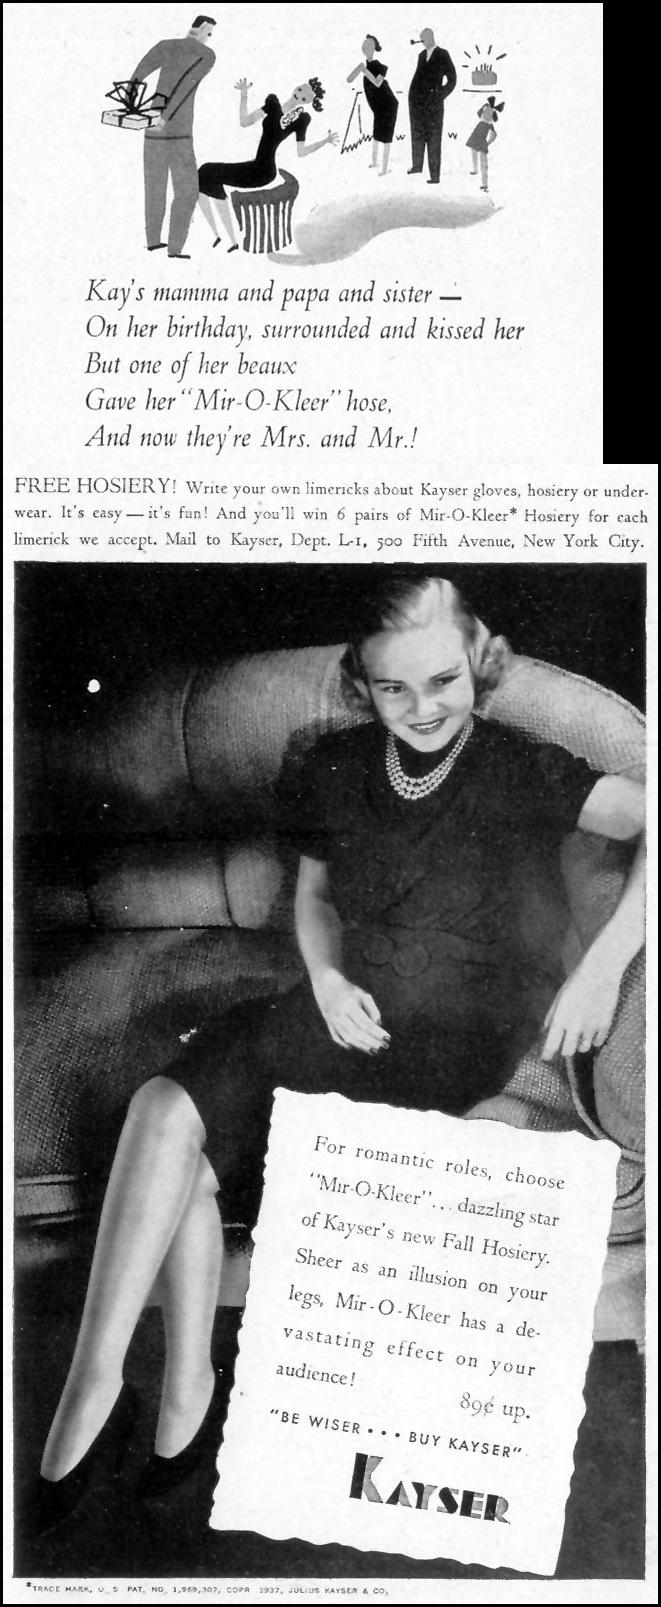 MIR-O-KLEER HOSIERY